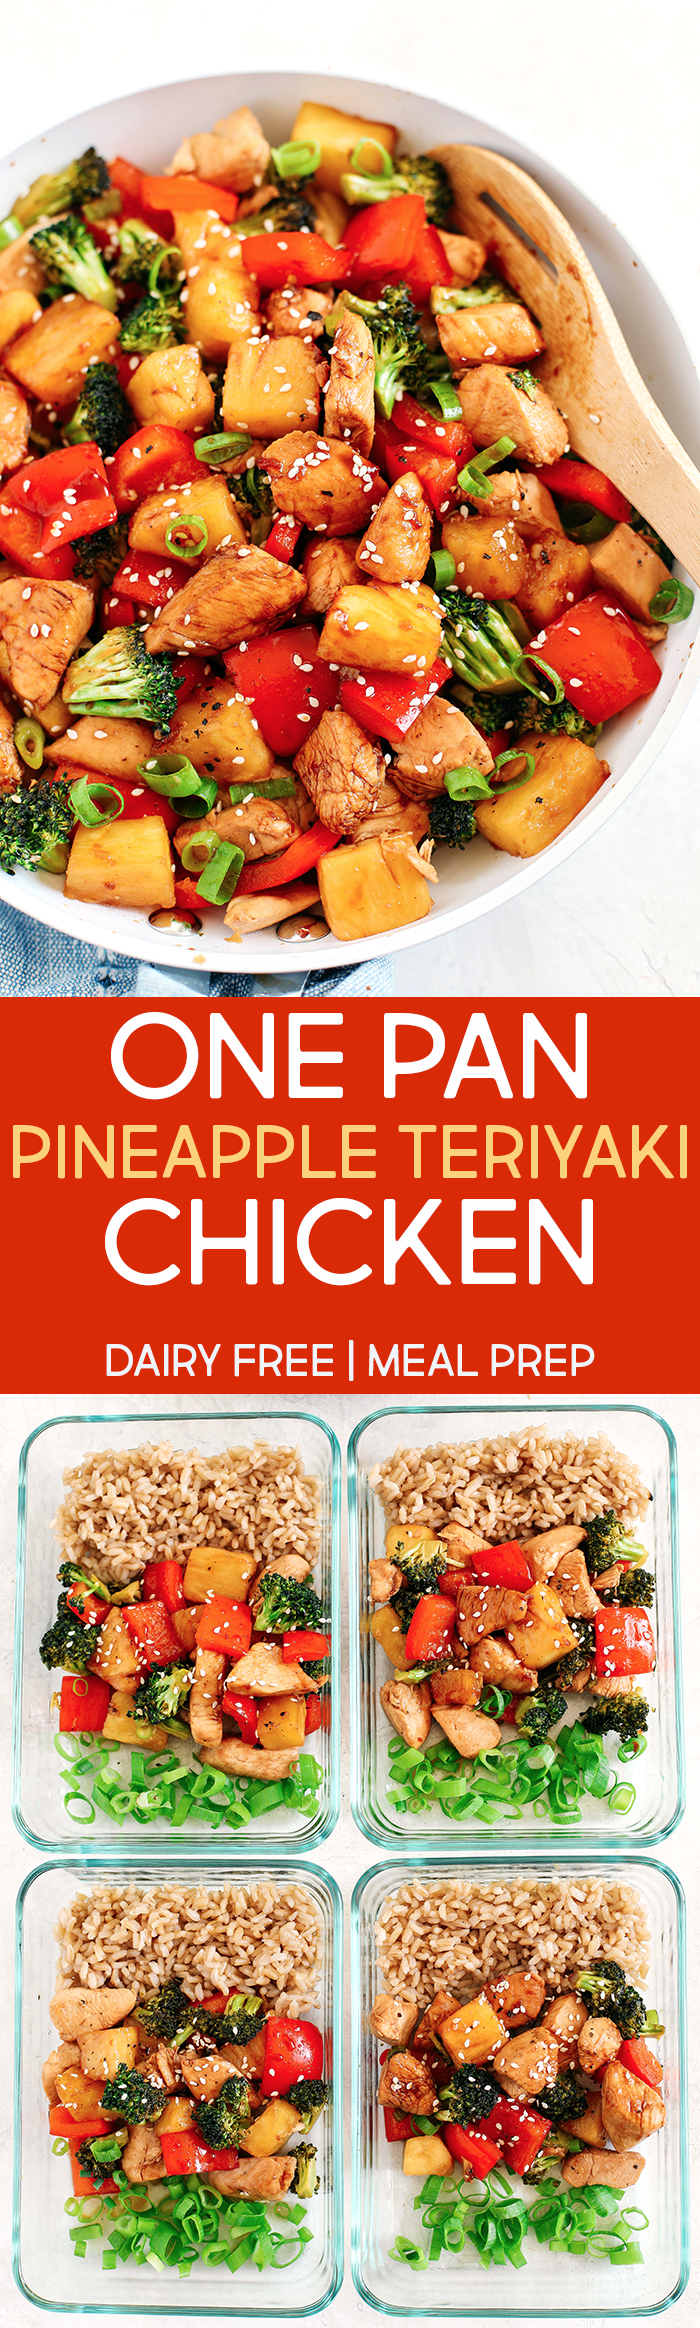 This EASY 20 minute One Pan Pineapple Teriyaki Chicken is the perfect weeknight meal that is healthy, loaded with flavor and perfect for your weekly meal prep!